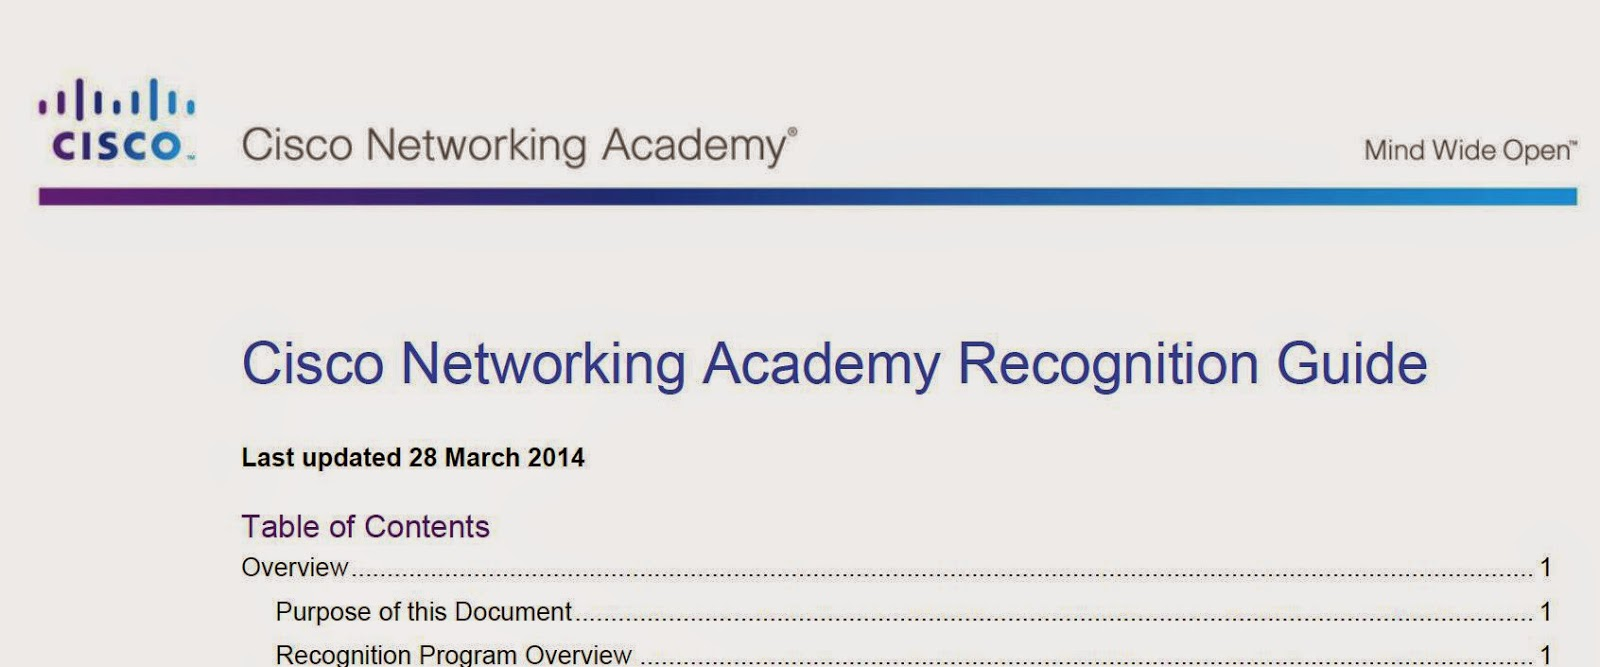 Cisco Networking Academy Recognition Guide